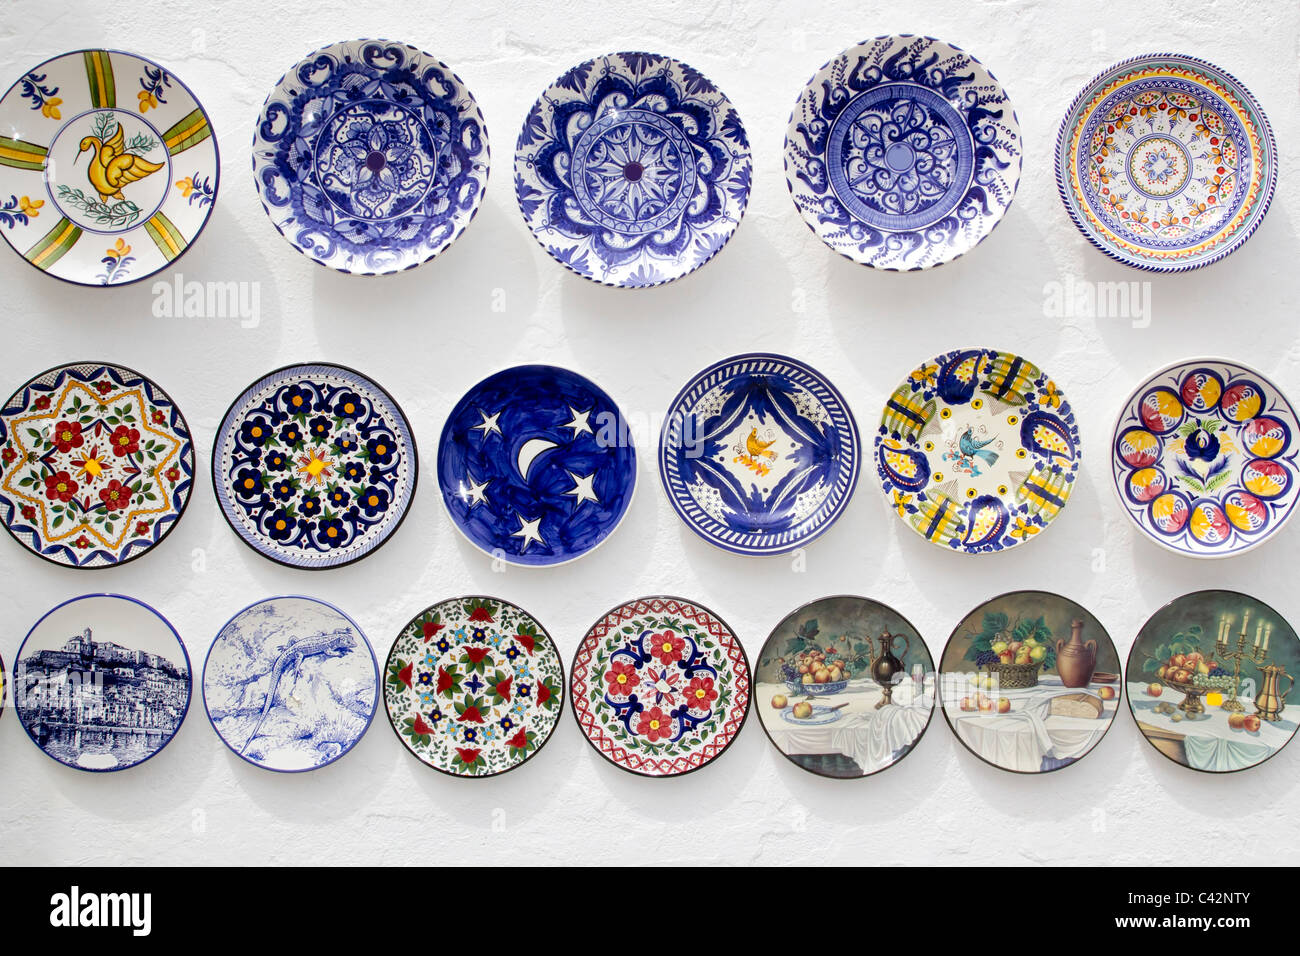 ceramic plates decorated hand painted crafts Mediterranean Ibiza - Stock Image & Ceramic Plates Stock Photos \u0026 Ceramic Plates Stock Images - Alamy